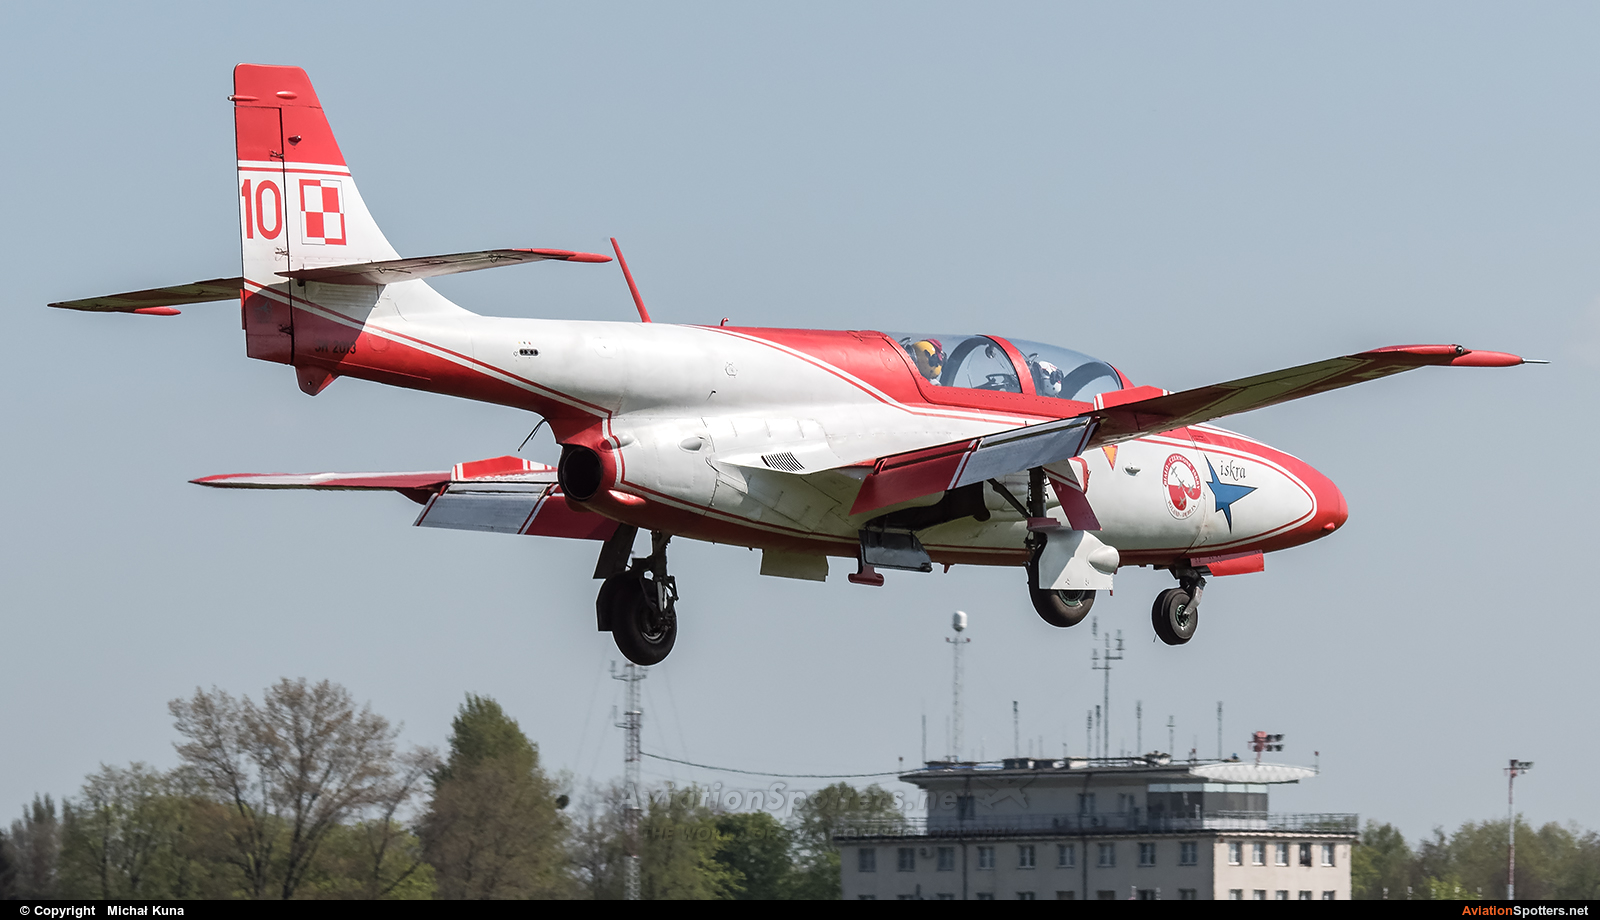 Poland - Air Force: White & Red Iskras  -  TS-11 Iskra  (3H-2013) By Michał Kuna (big)